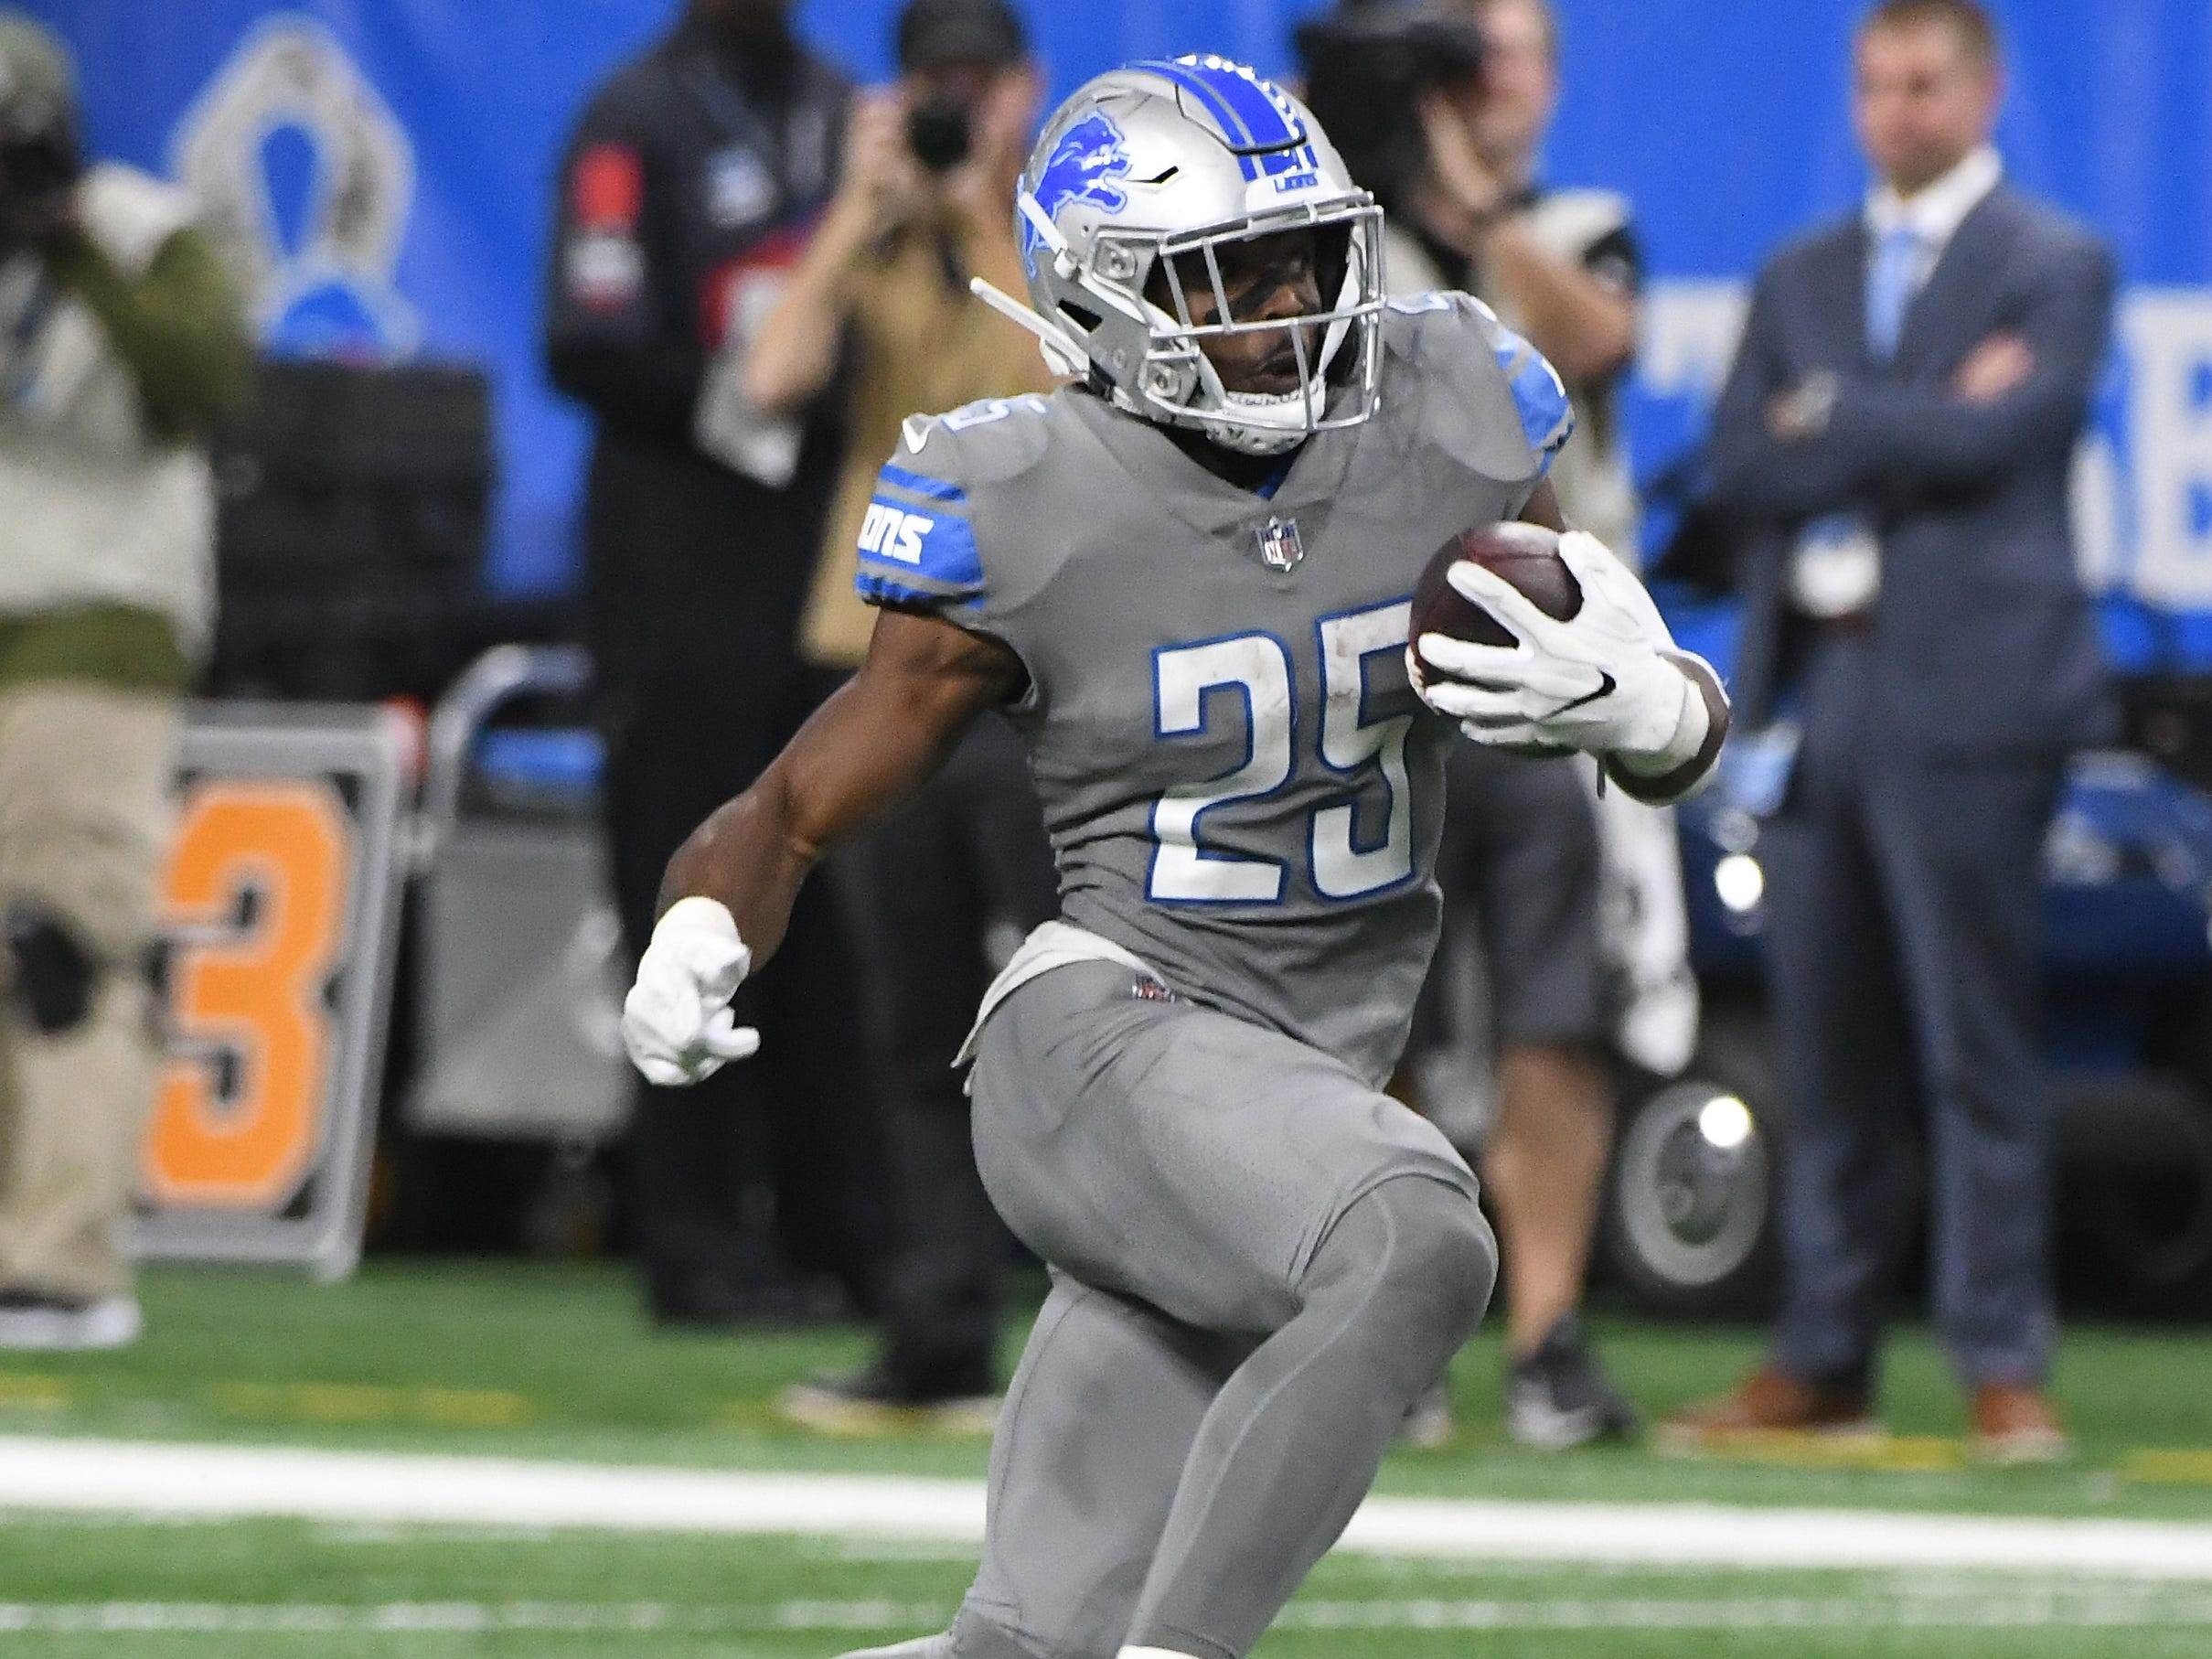 RB Theo Riddick: It's unclear whether defenders have figured him out or he's actually lost a step, but Riddick wasn't anywhere near as elusive as he's been in the past. As a receiver, the bread and butter of his skill set, he caught 61 passes. But his 6.3 yards per catch were a career-low. That's because he wasn't making defenders to miss. After forcing an average of 24 missed tackles as a receiver the past three seasons, Riddick mustered just seven in 2018, according to Pro Football Focus. Grade: C